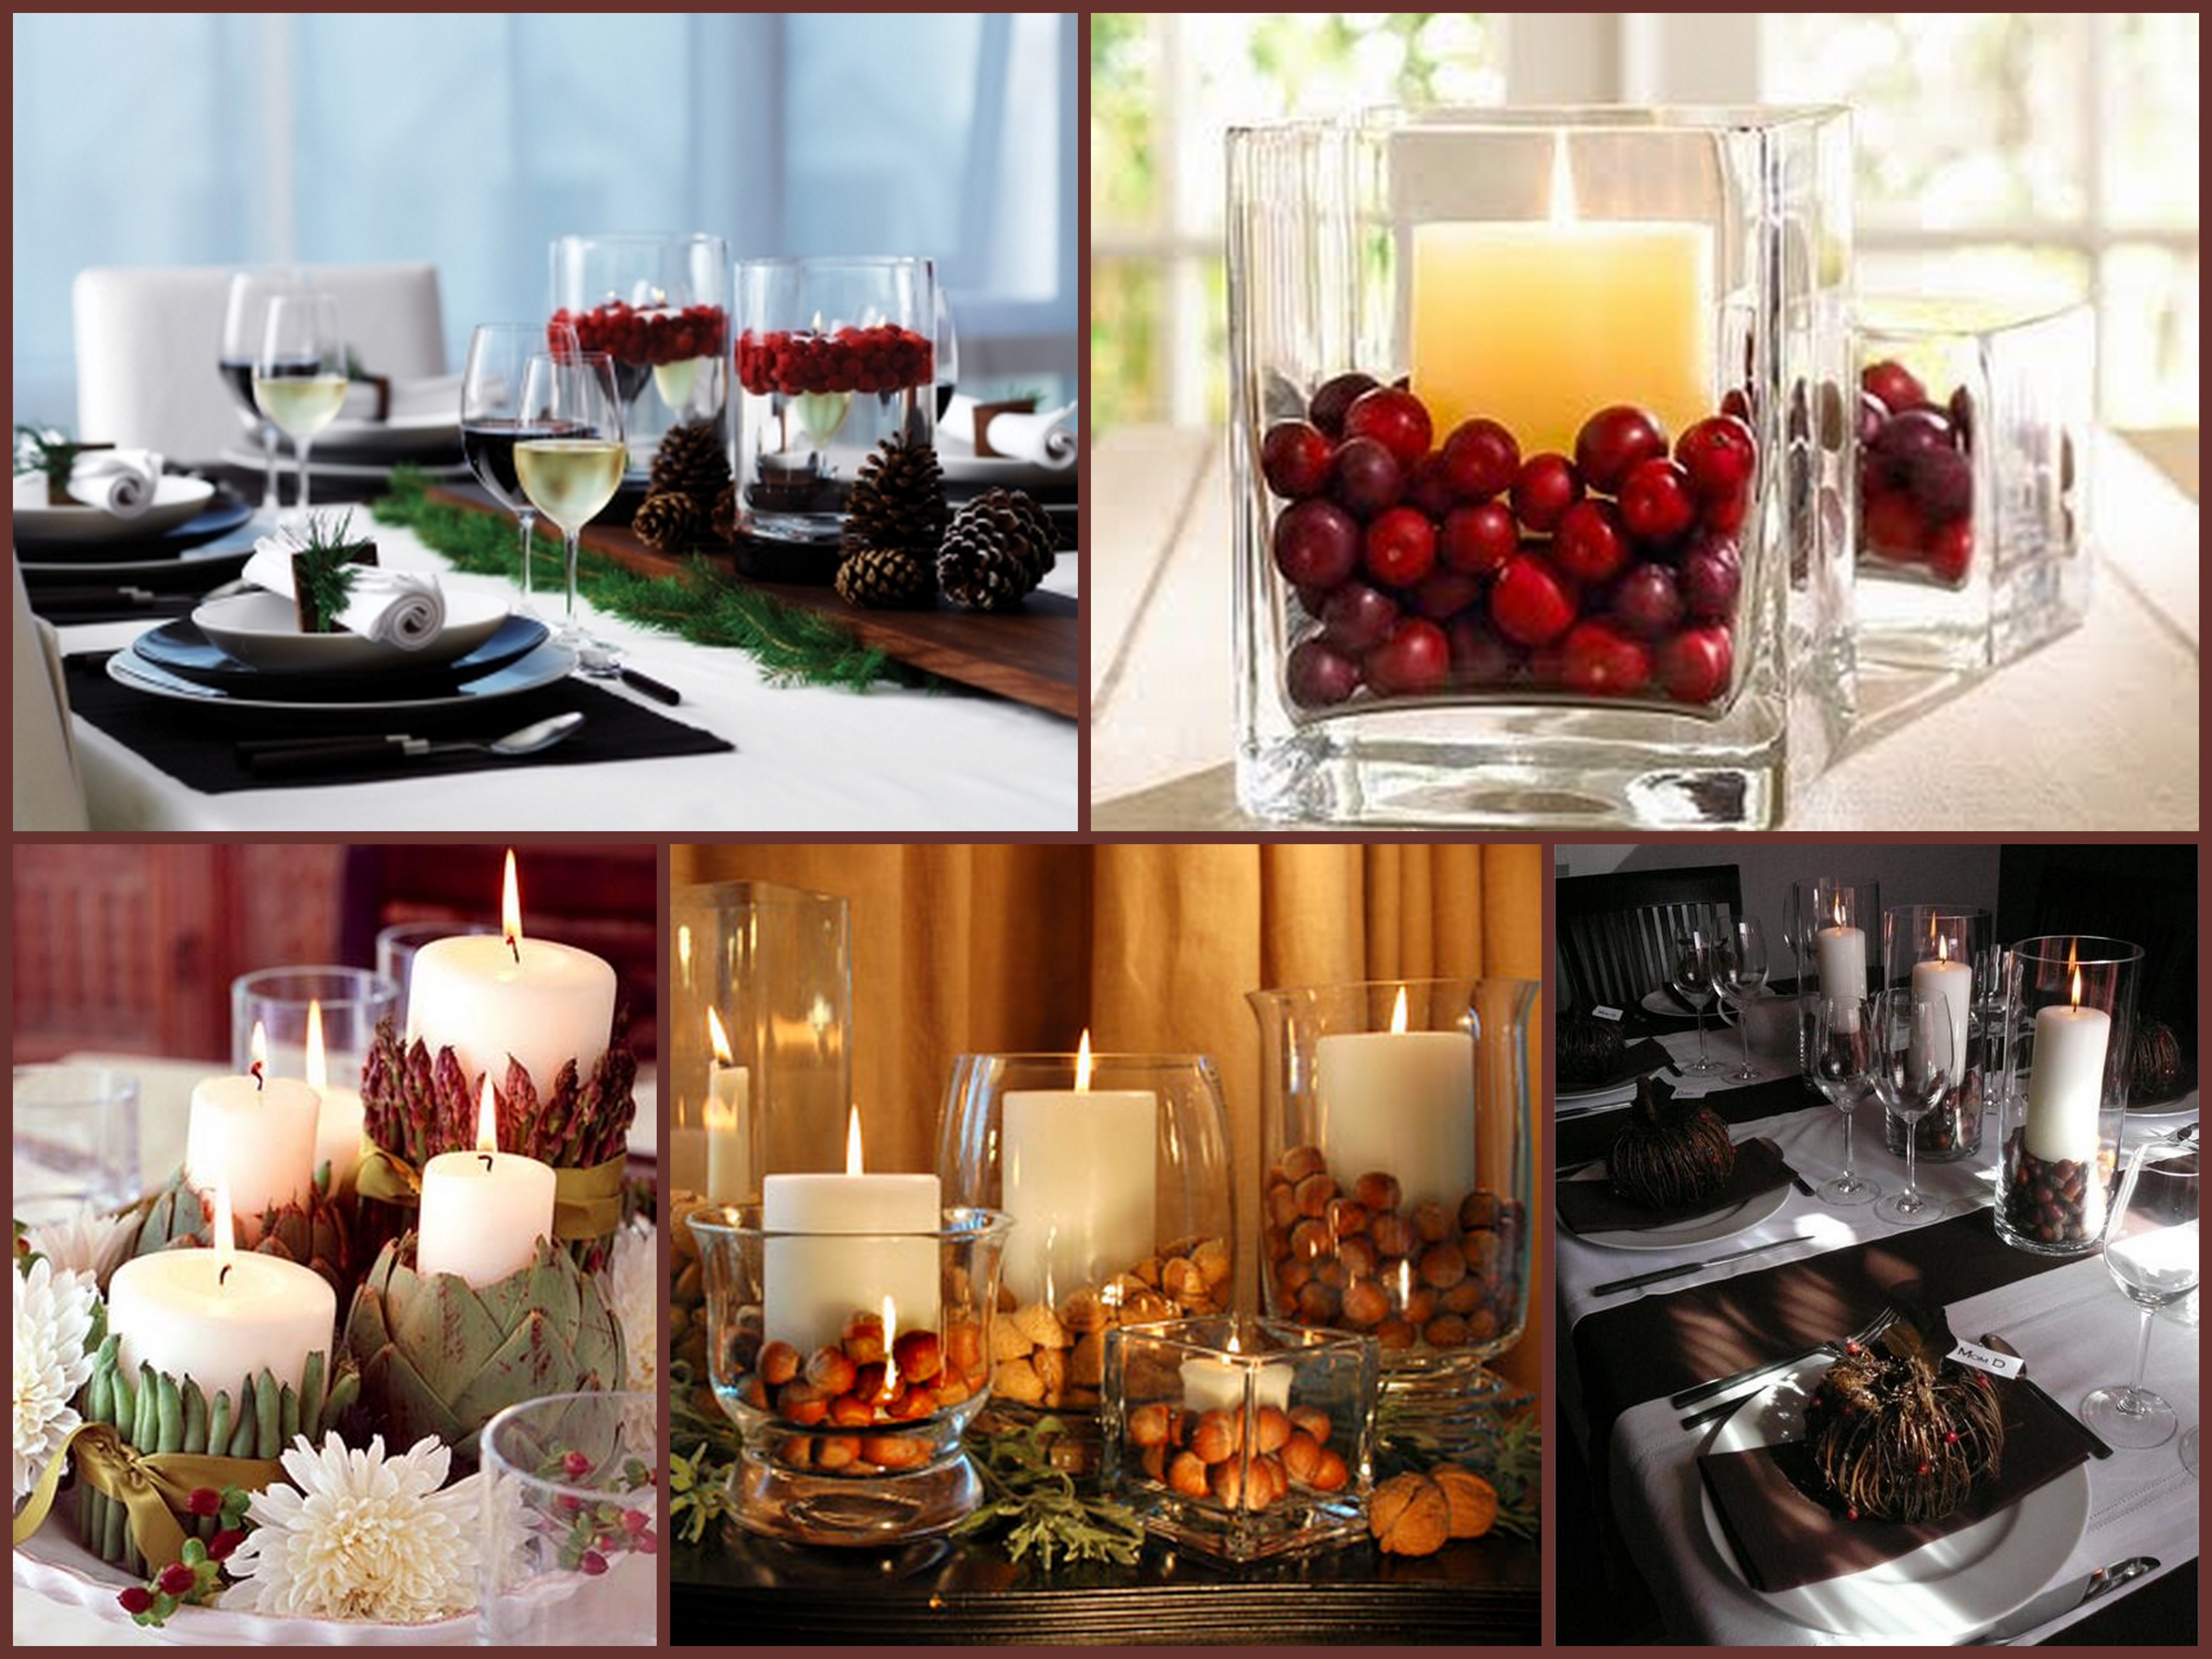 Thanksgiving Table Decorations  Last Minute Holiday Centerpiece – A S D INTERIORS BLOG